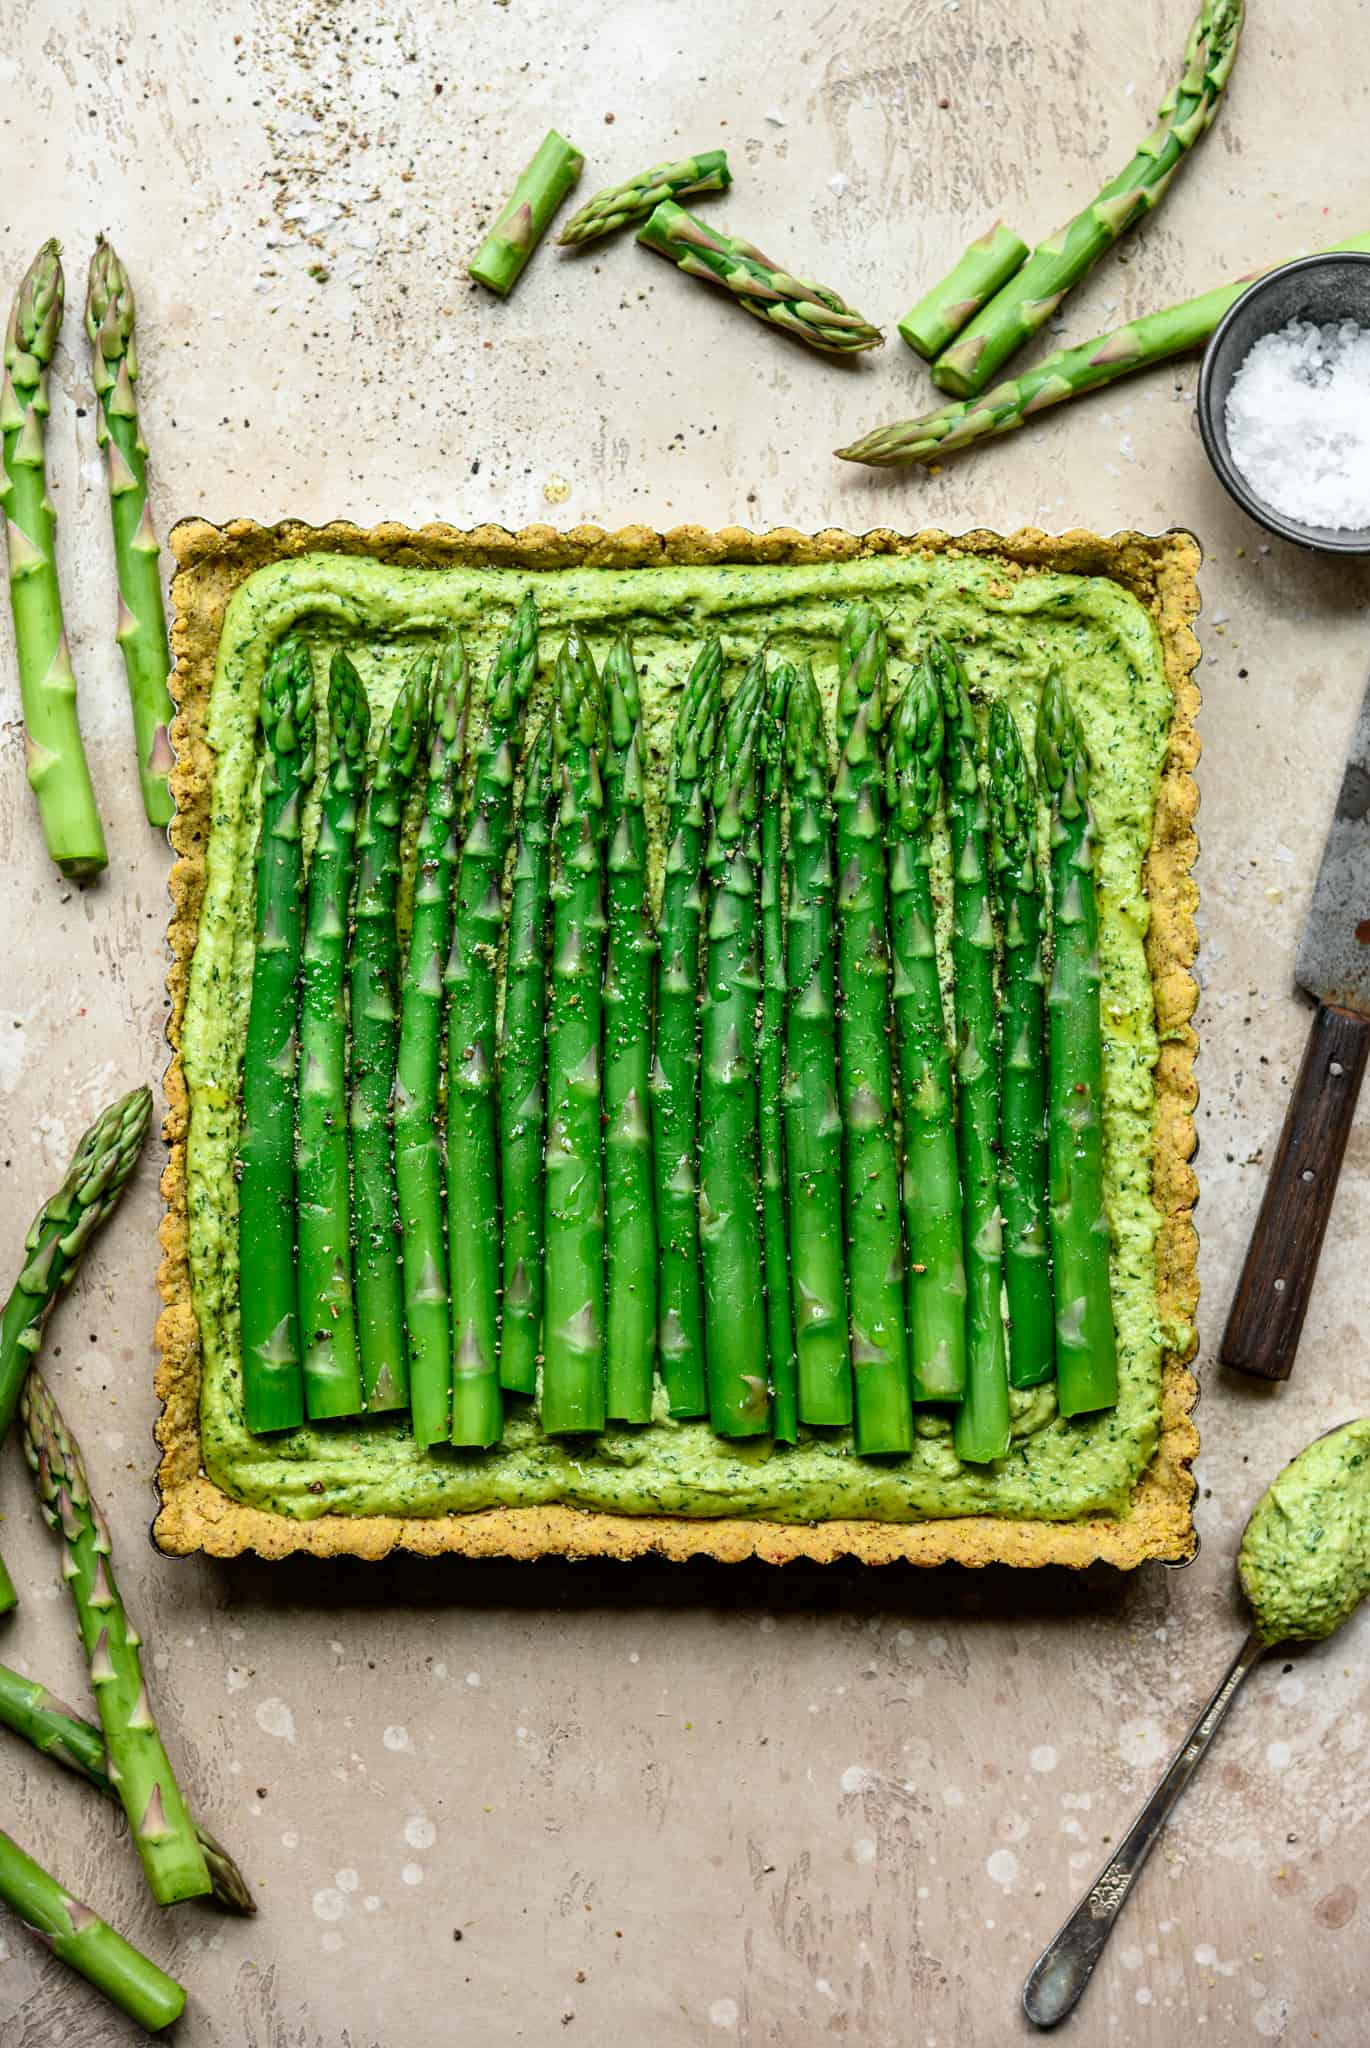 Overhead view of vegan ricotta and asparagus tart with a cornmeal crust on light tan background